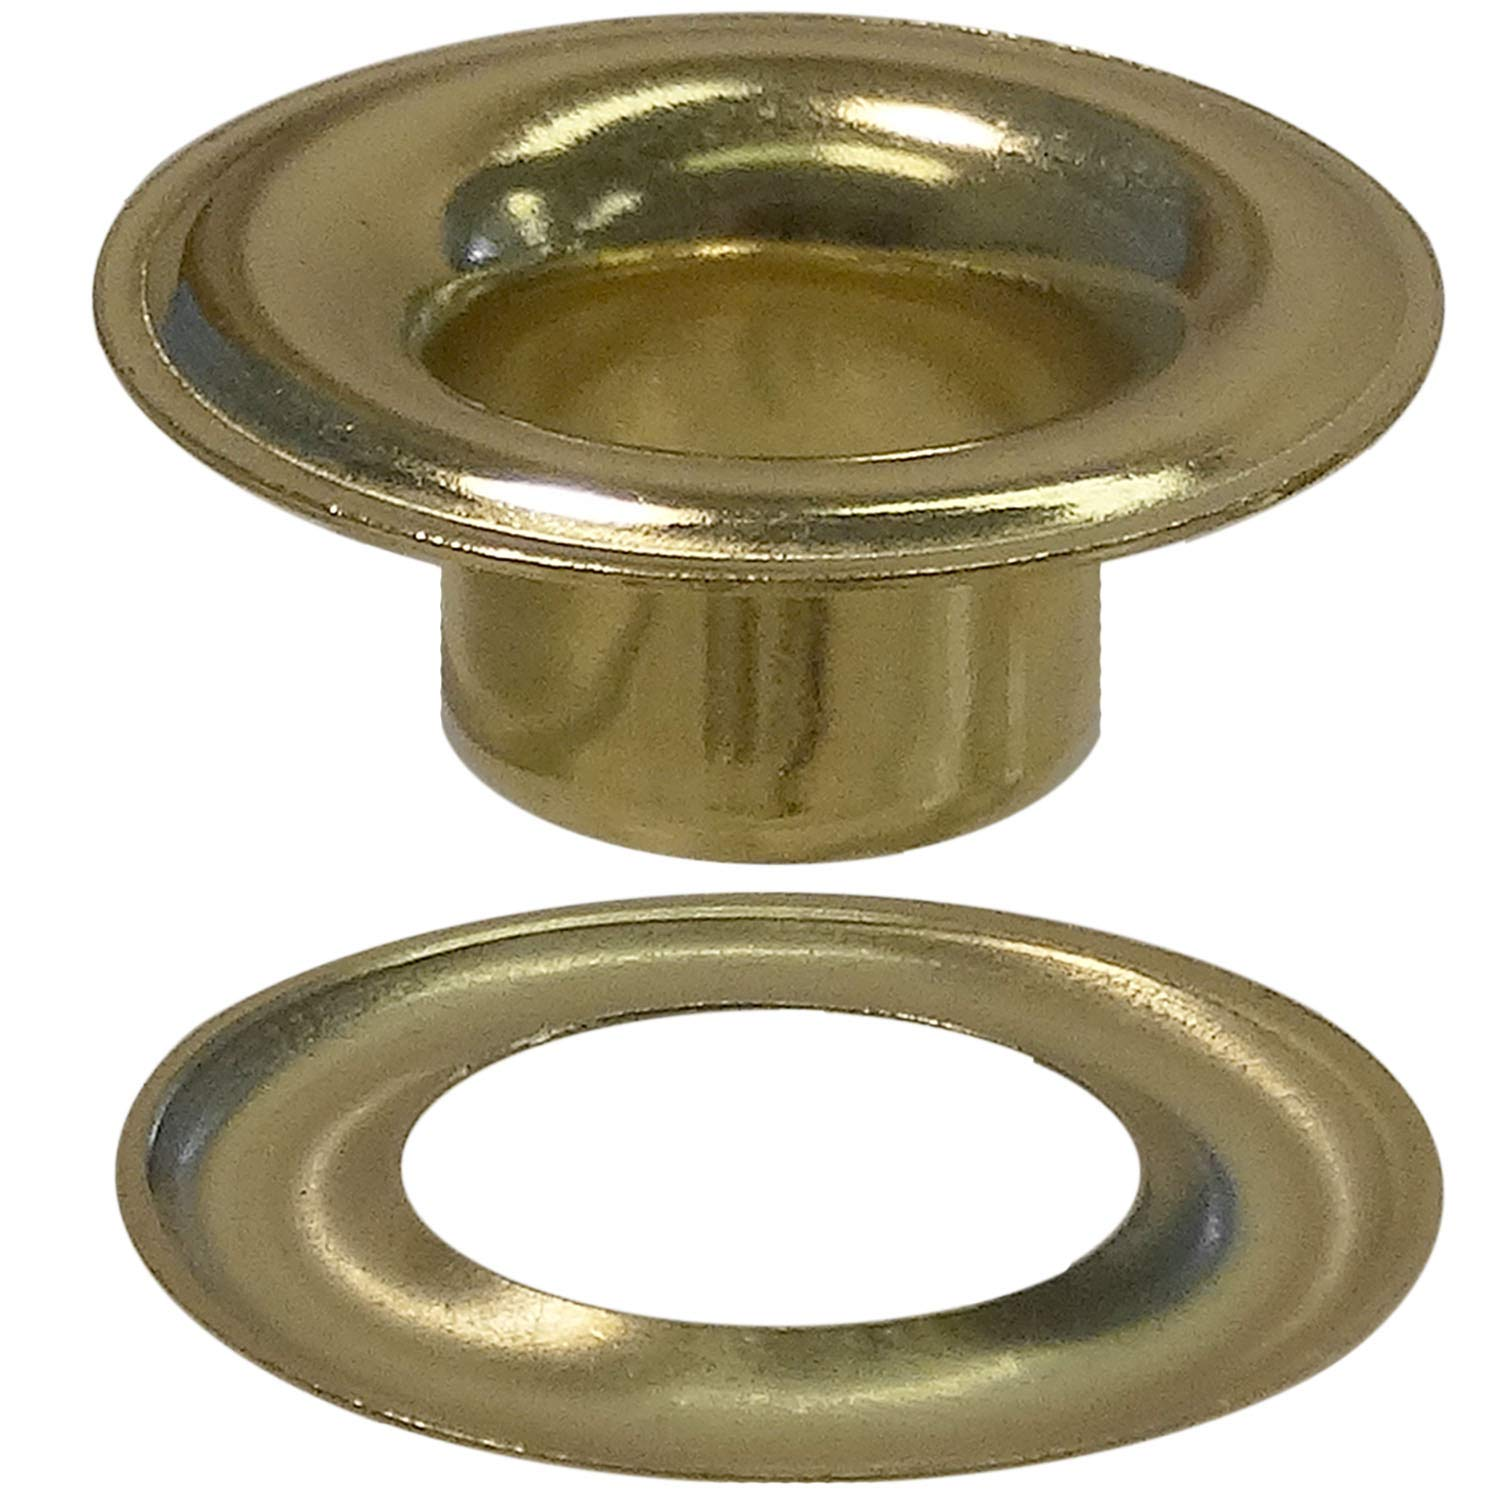 Stimpson Sheet Metal Grommet and Washer Brass Durable, Reliable, Heavy-Duty #3 Set (1,440 Pieces of Each) by Stimpson Co., Inc. (Image #1)